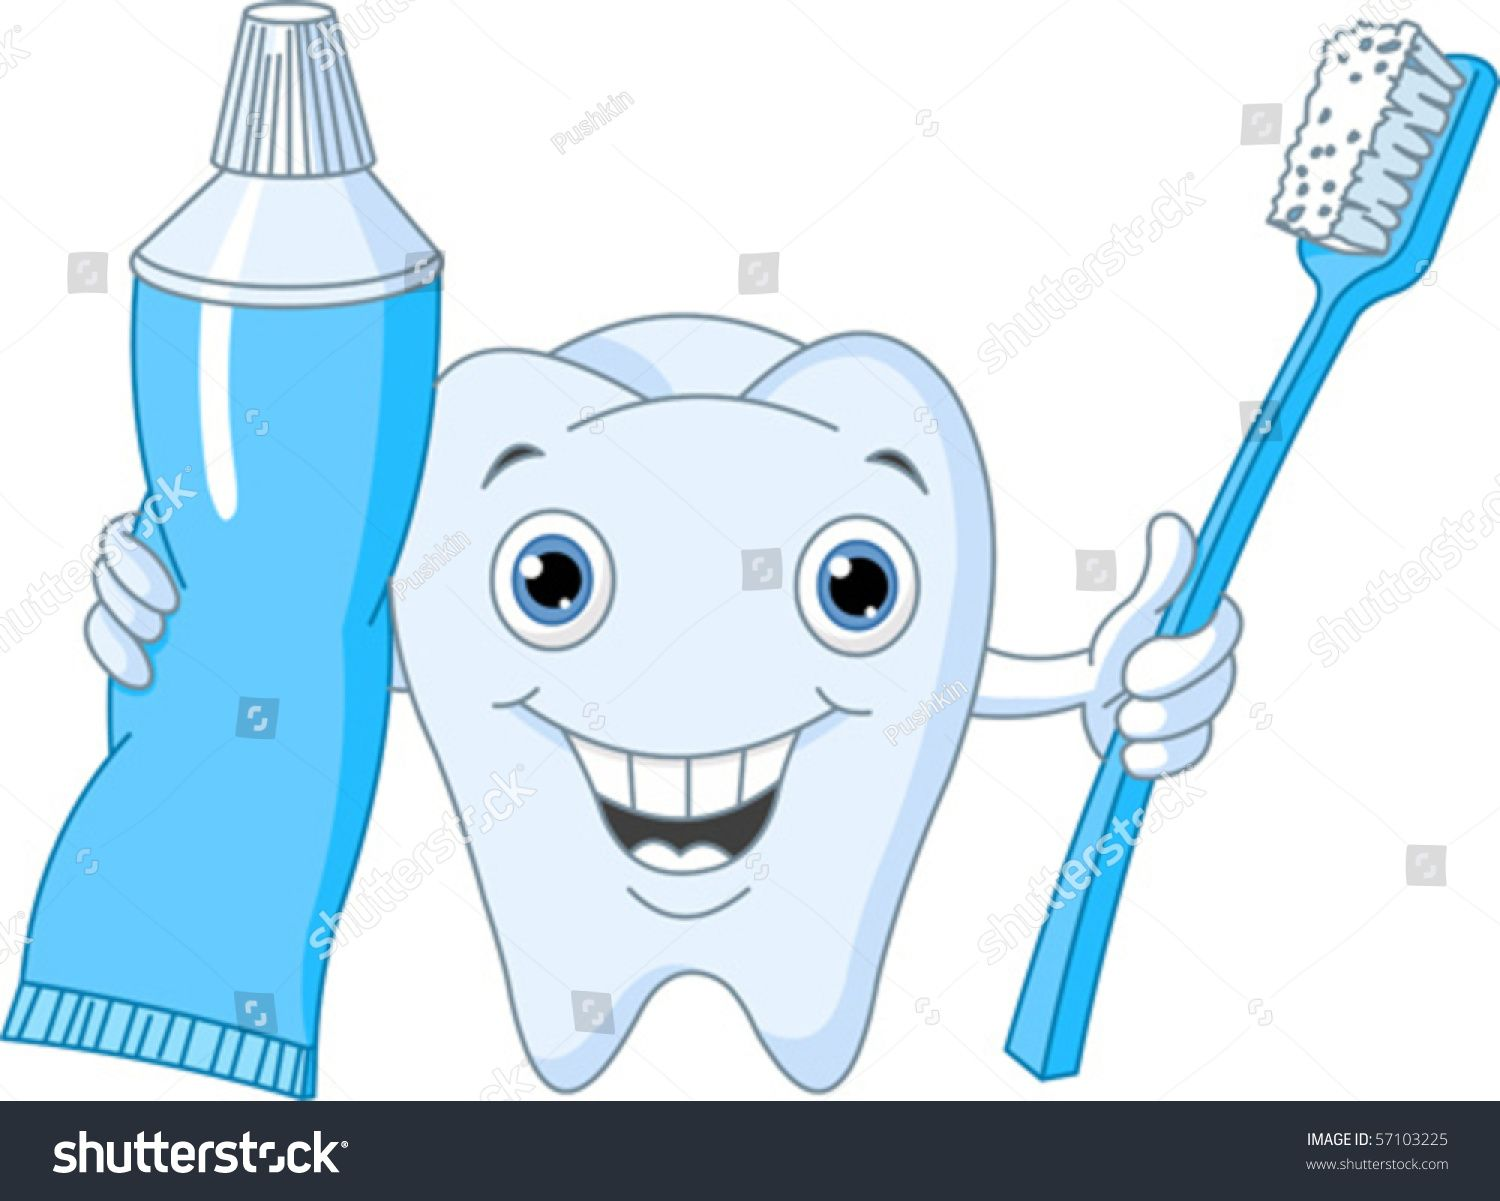 Cartoon Tooth Character Holding Toothbrush Toothpaste